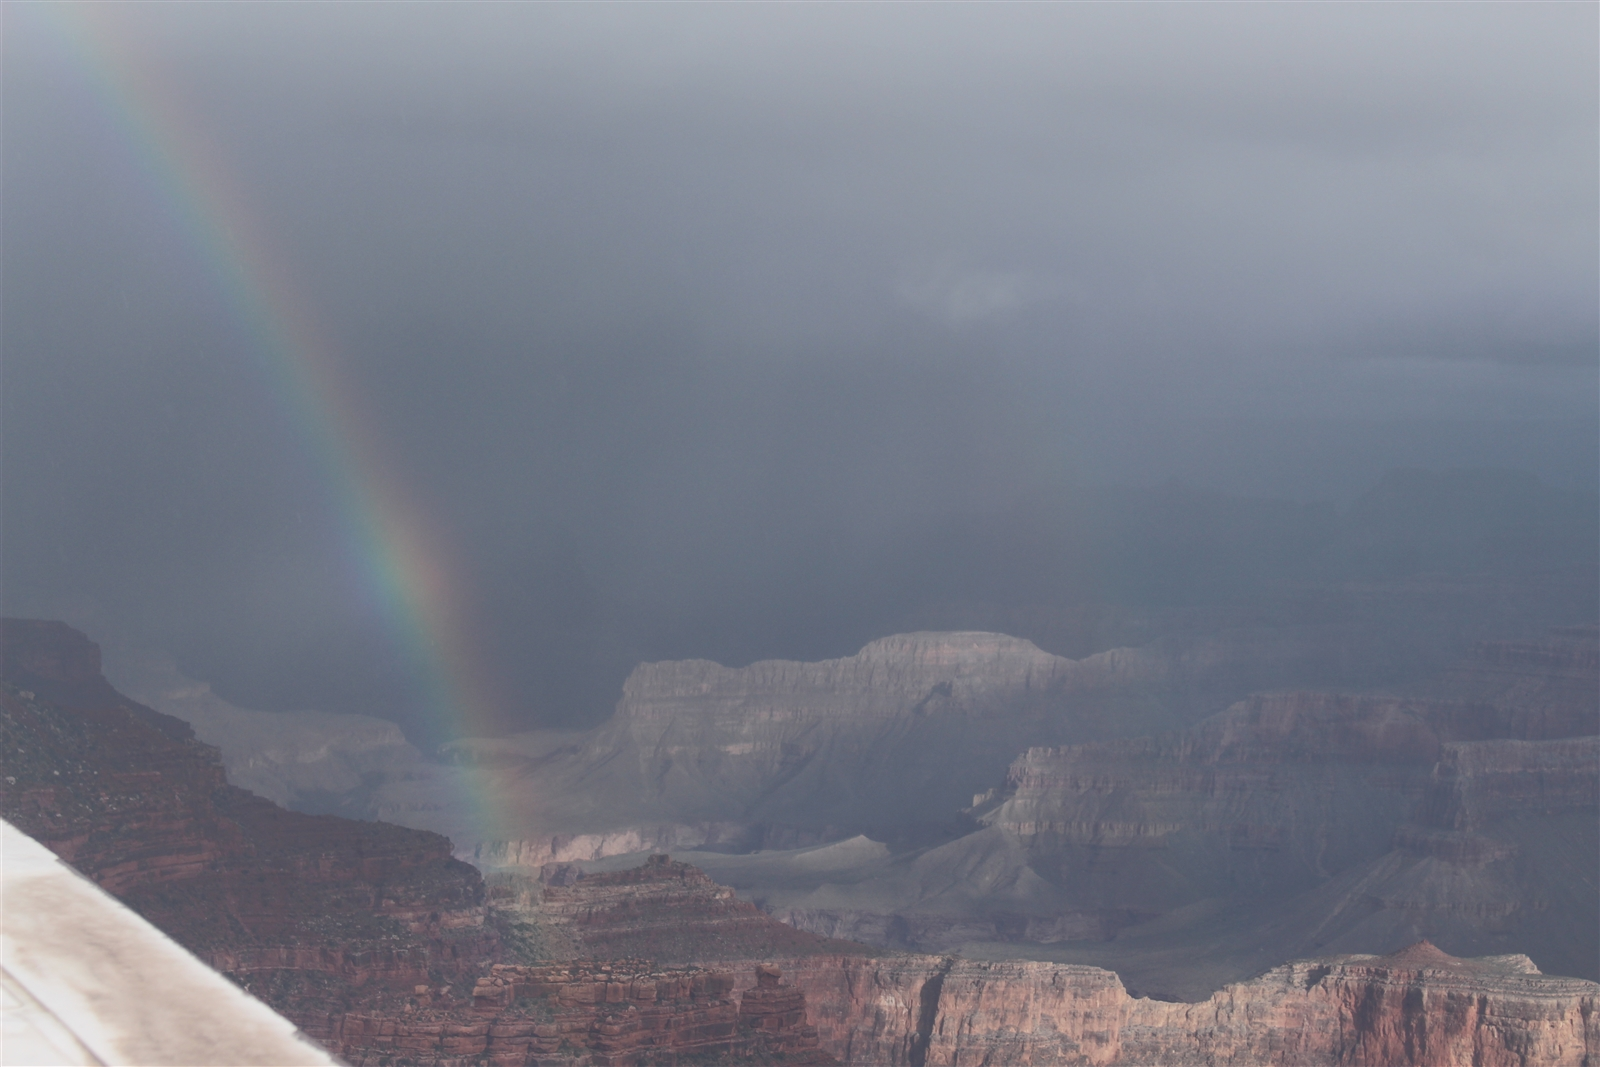 A still from a National Park Service webcam shows the view from Yavapai Point at the Grand Canyon National Park on May 27, 2019.